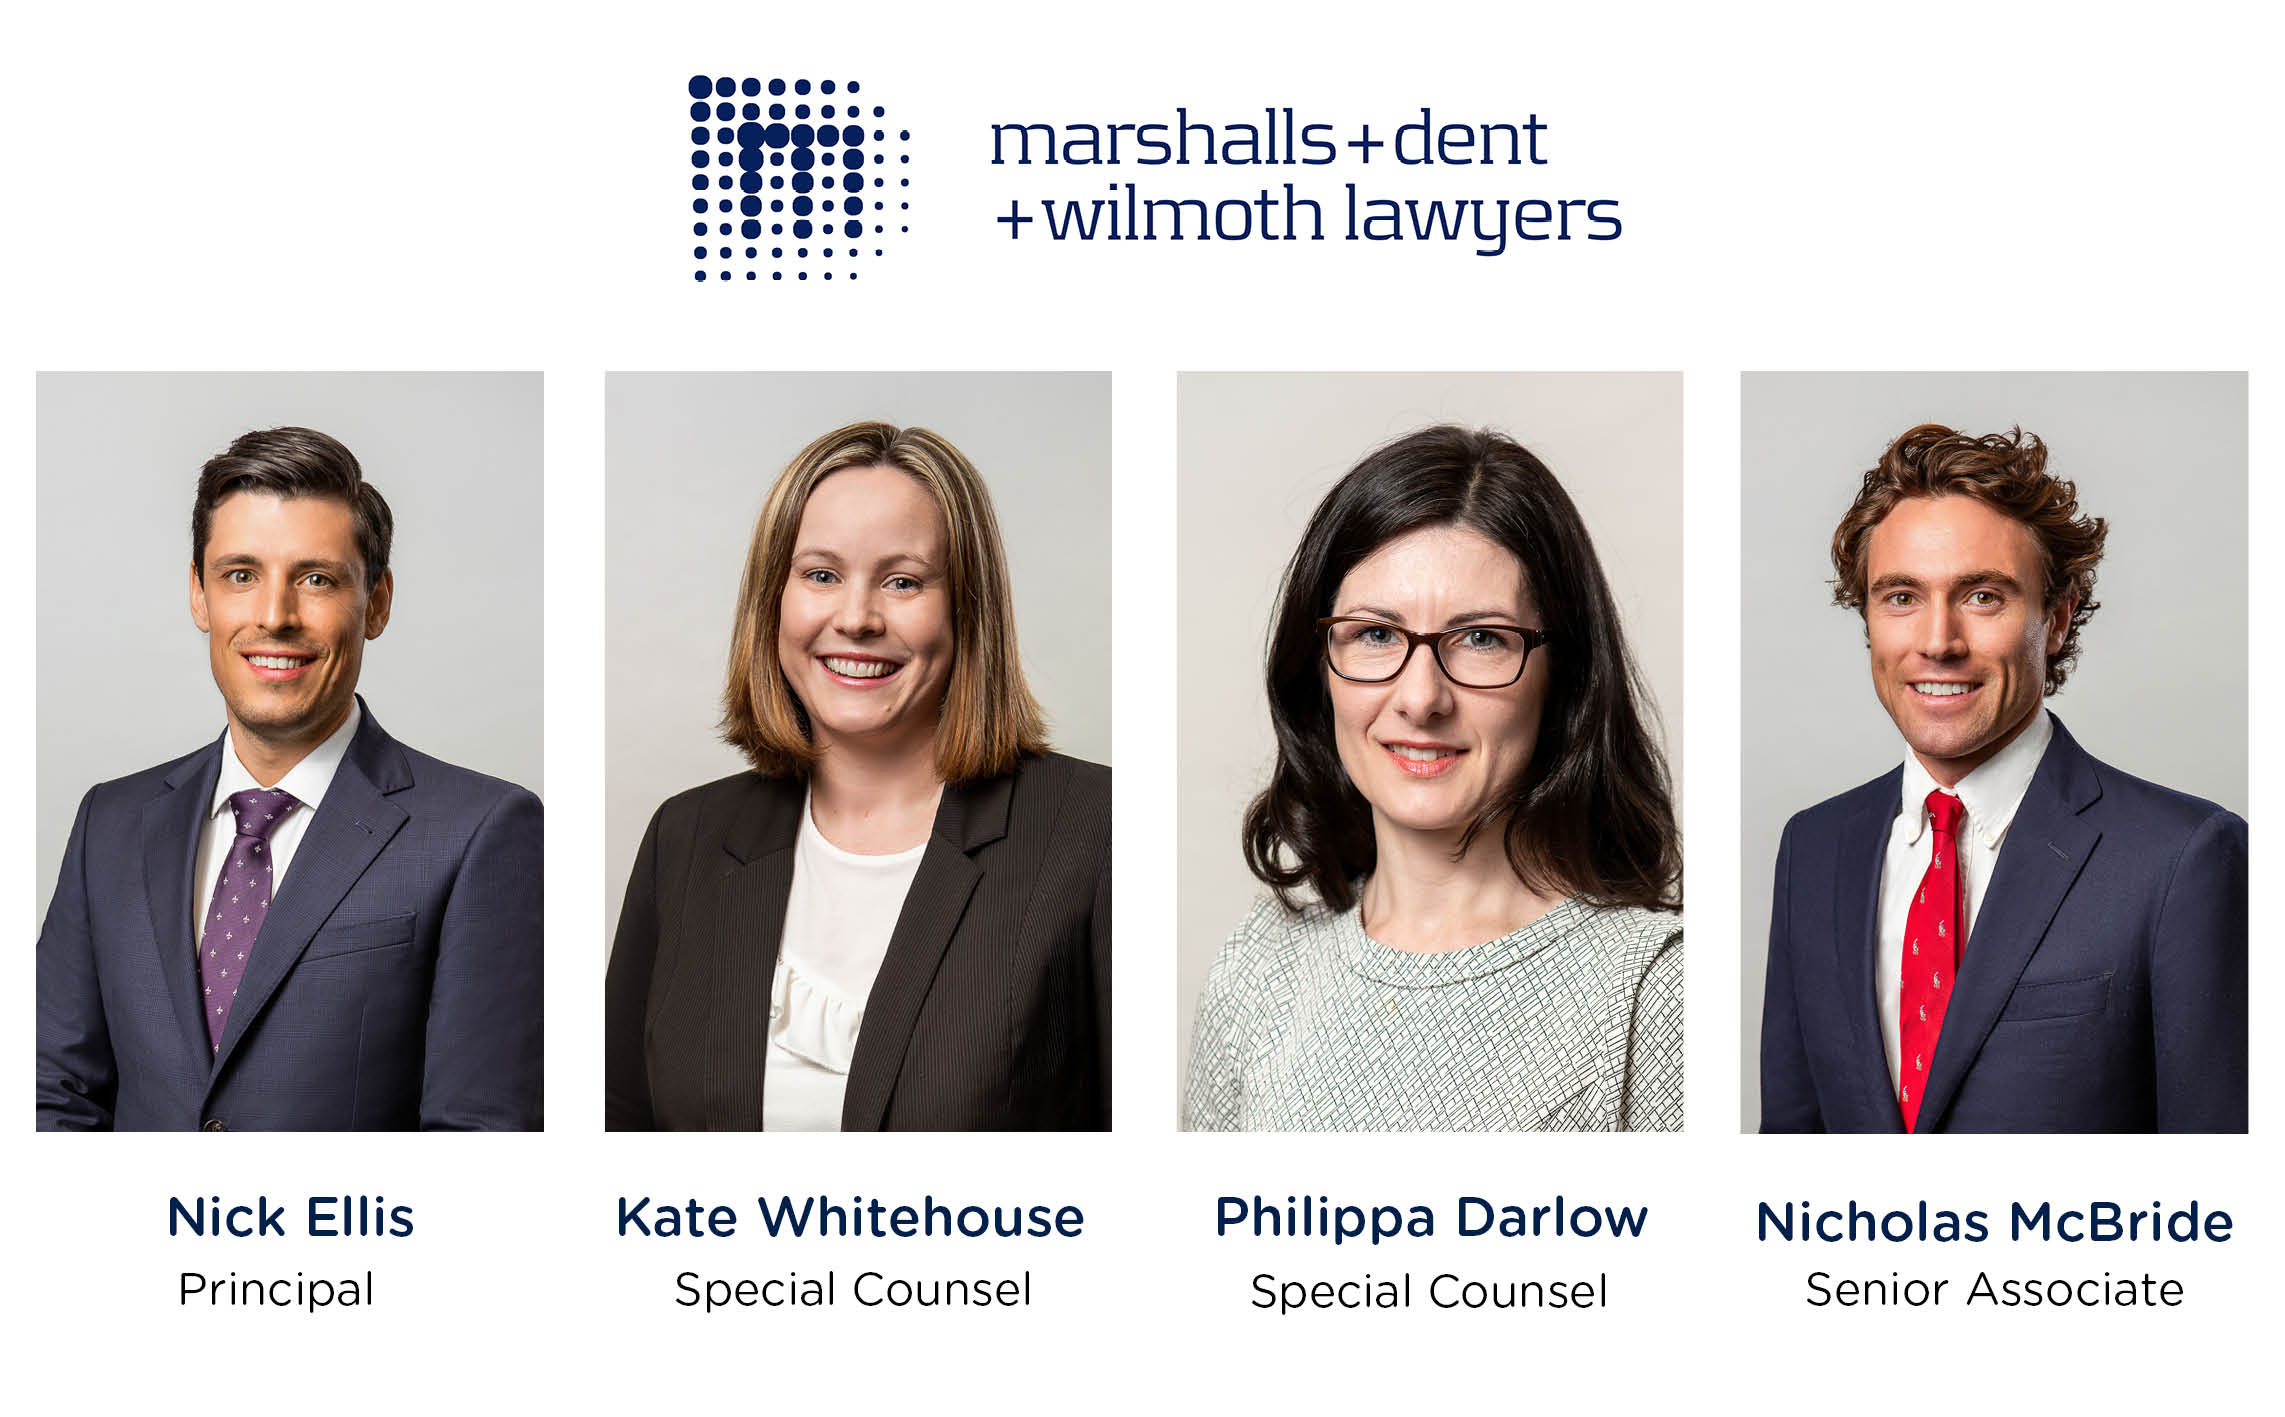 MDW family lawyers promoted to key positions in Melbourne office